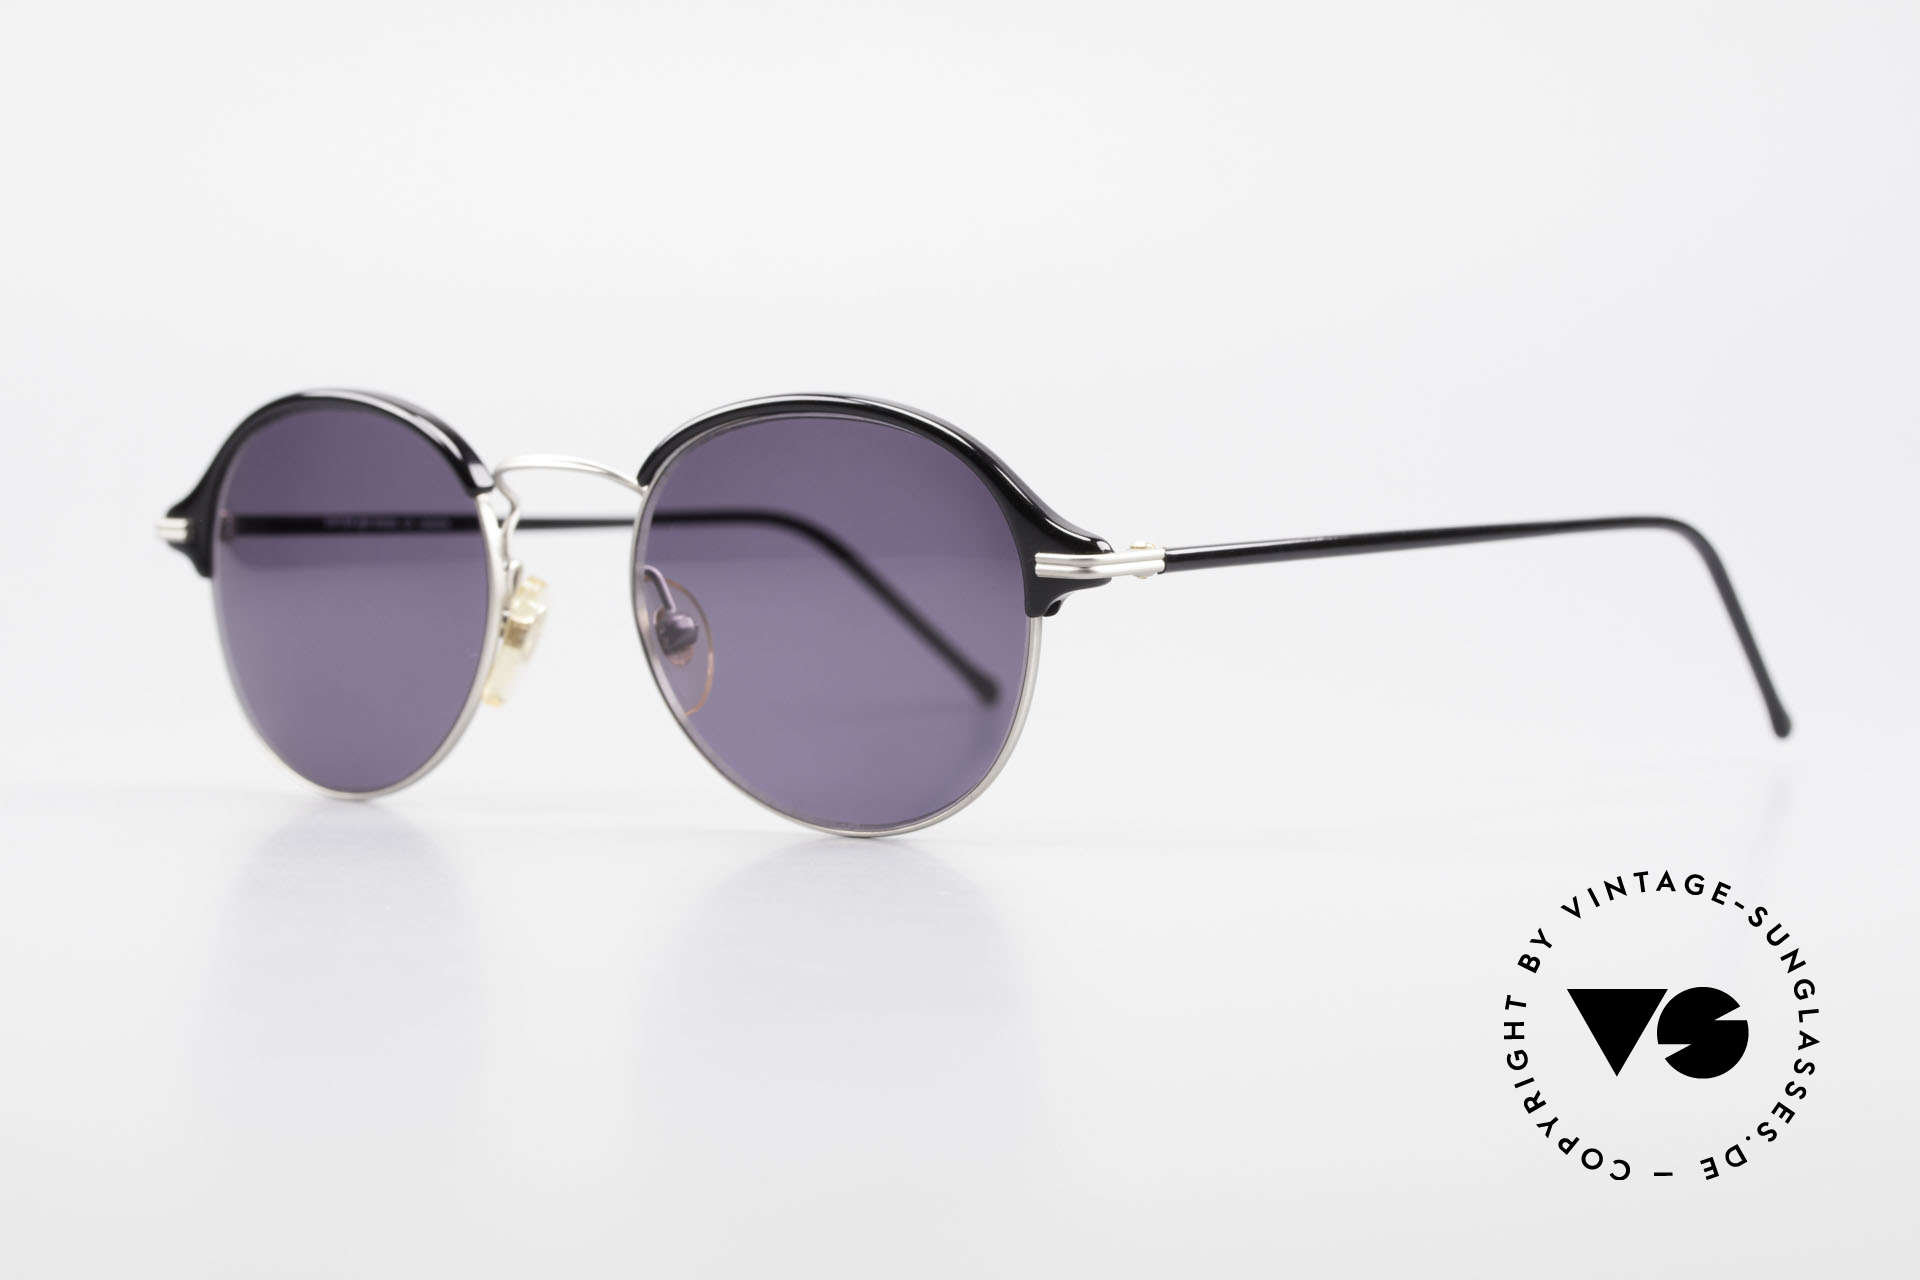 Cutler And Gross 0374 Panto Frame Windsor Rings, stylish & distinctive in absence of an ostentatious logo, Made for Men and Women